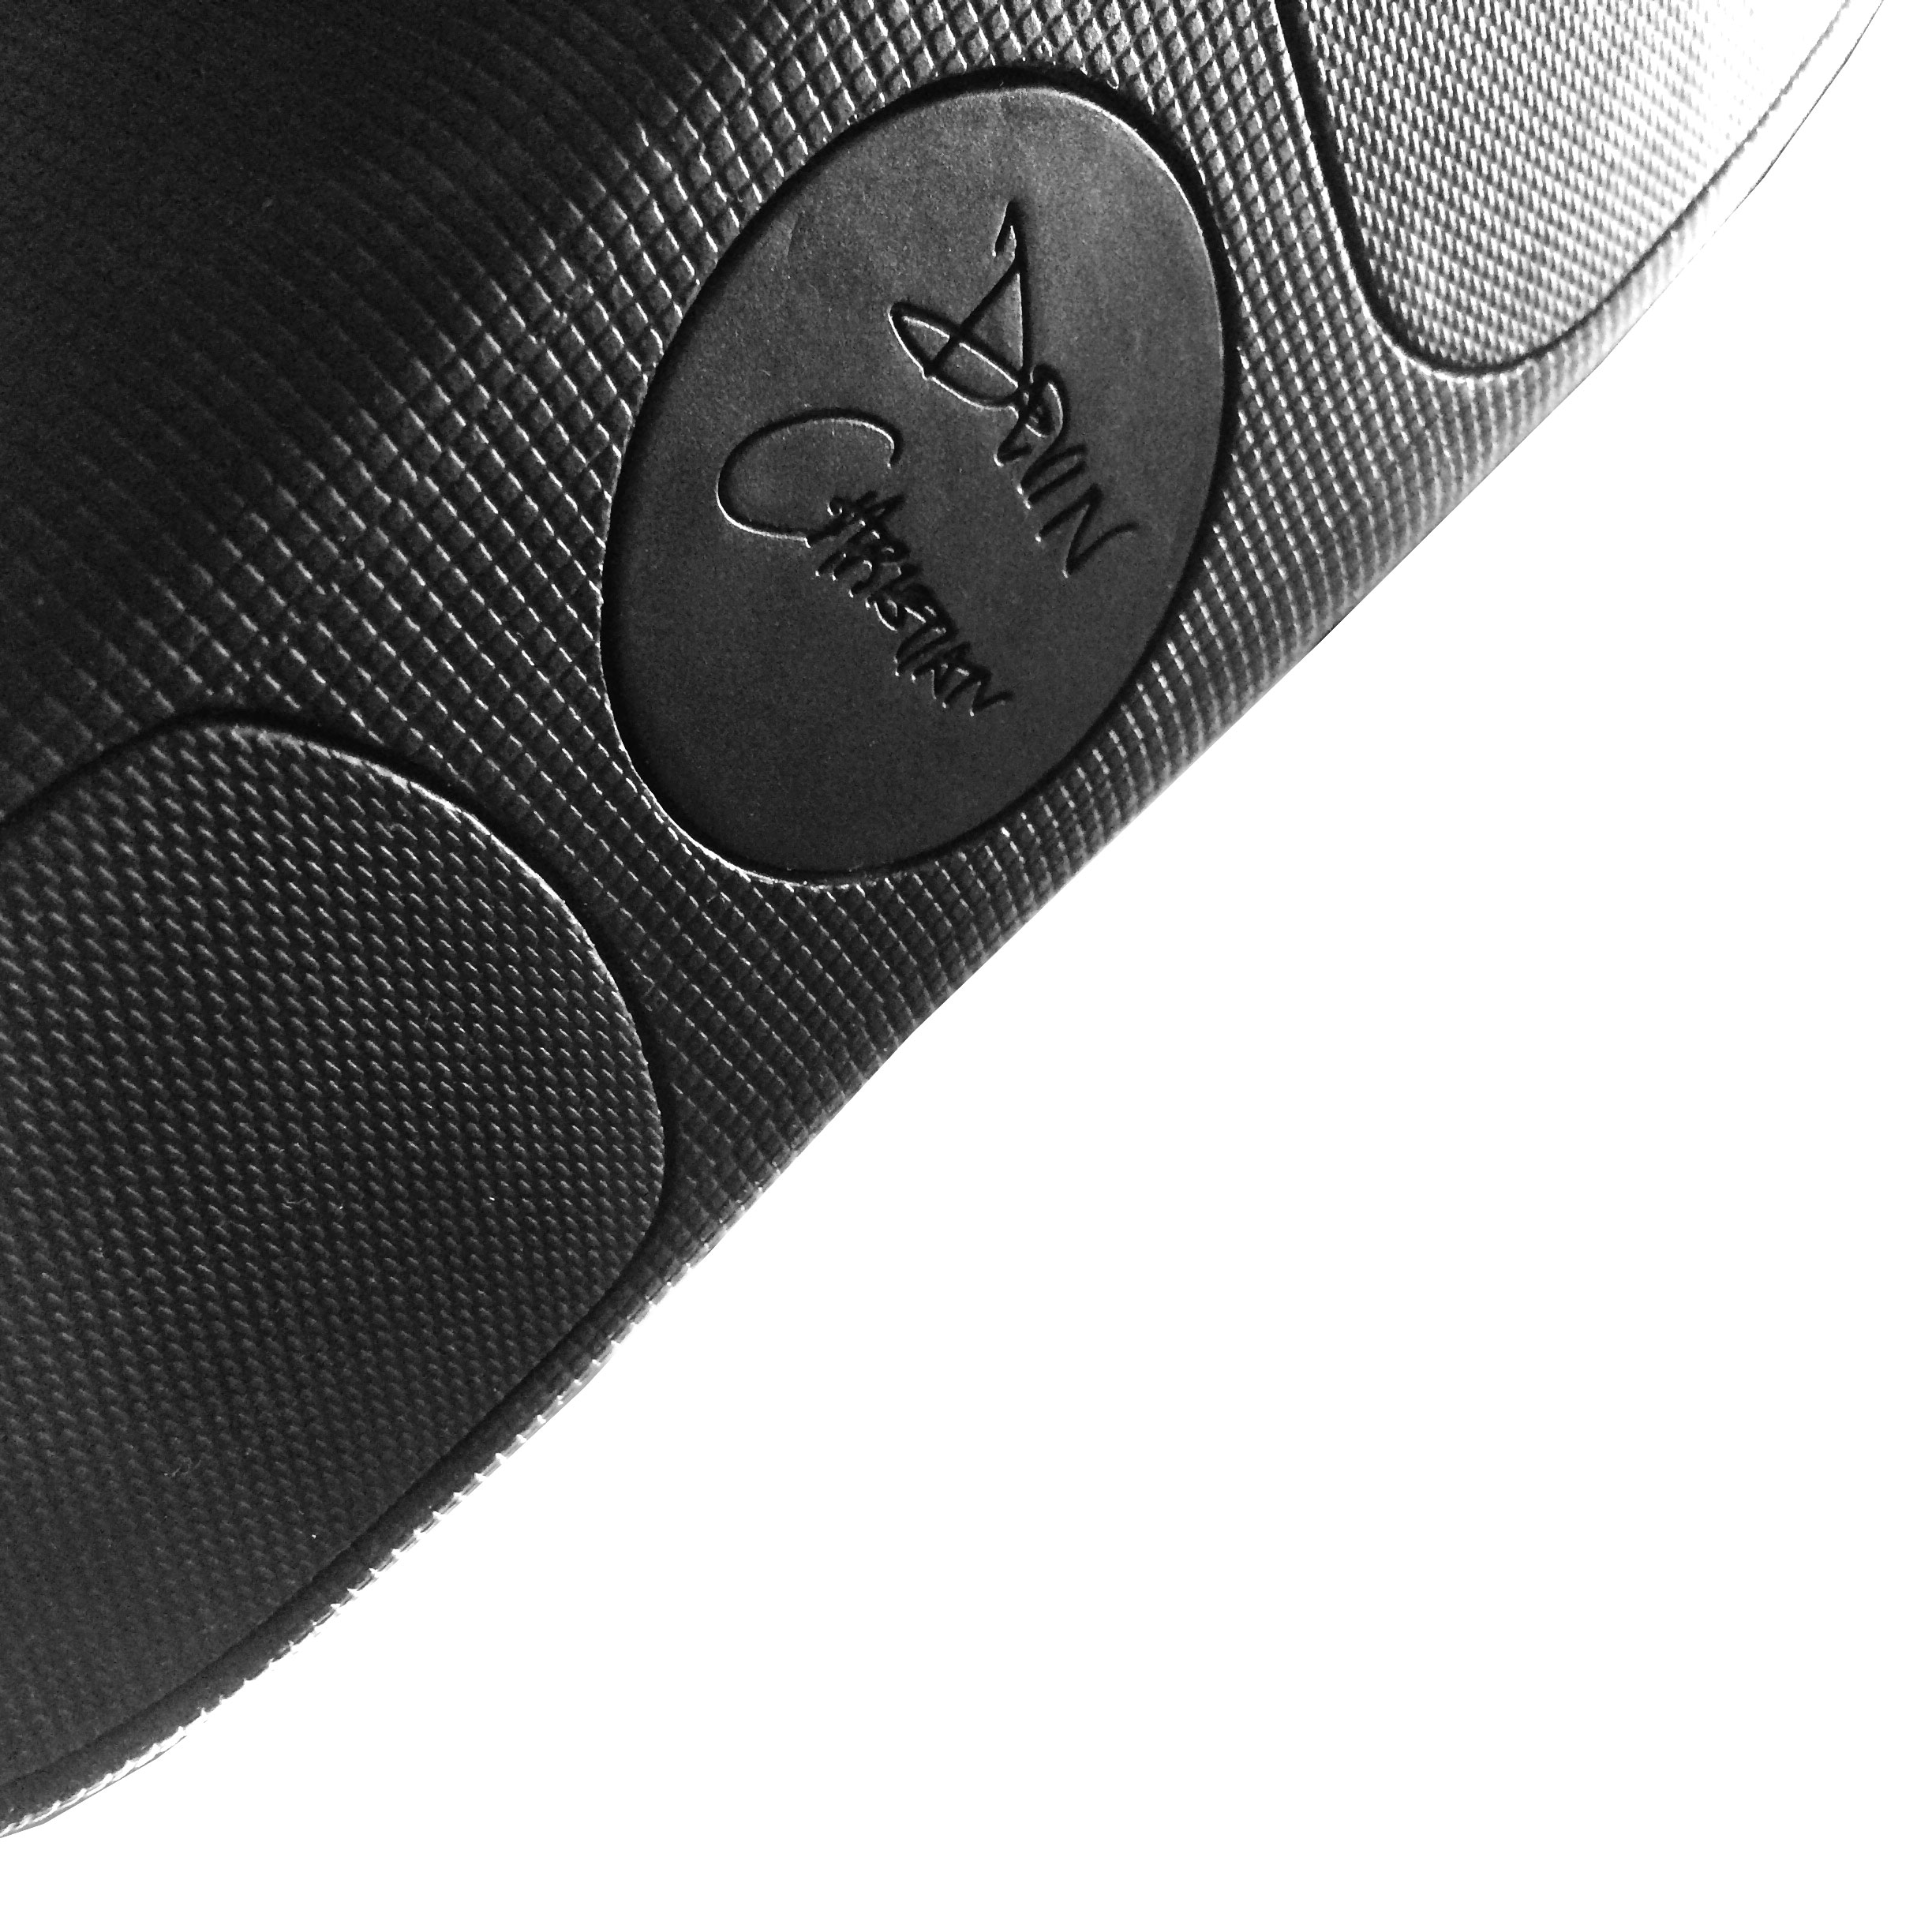 Outsole-detail.jpg